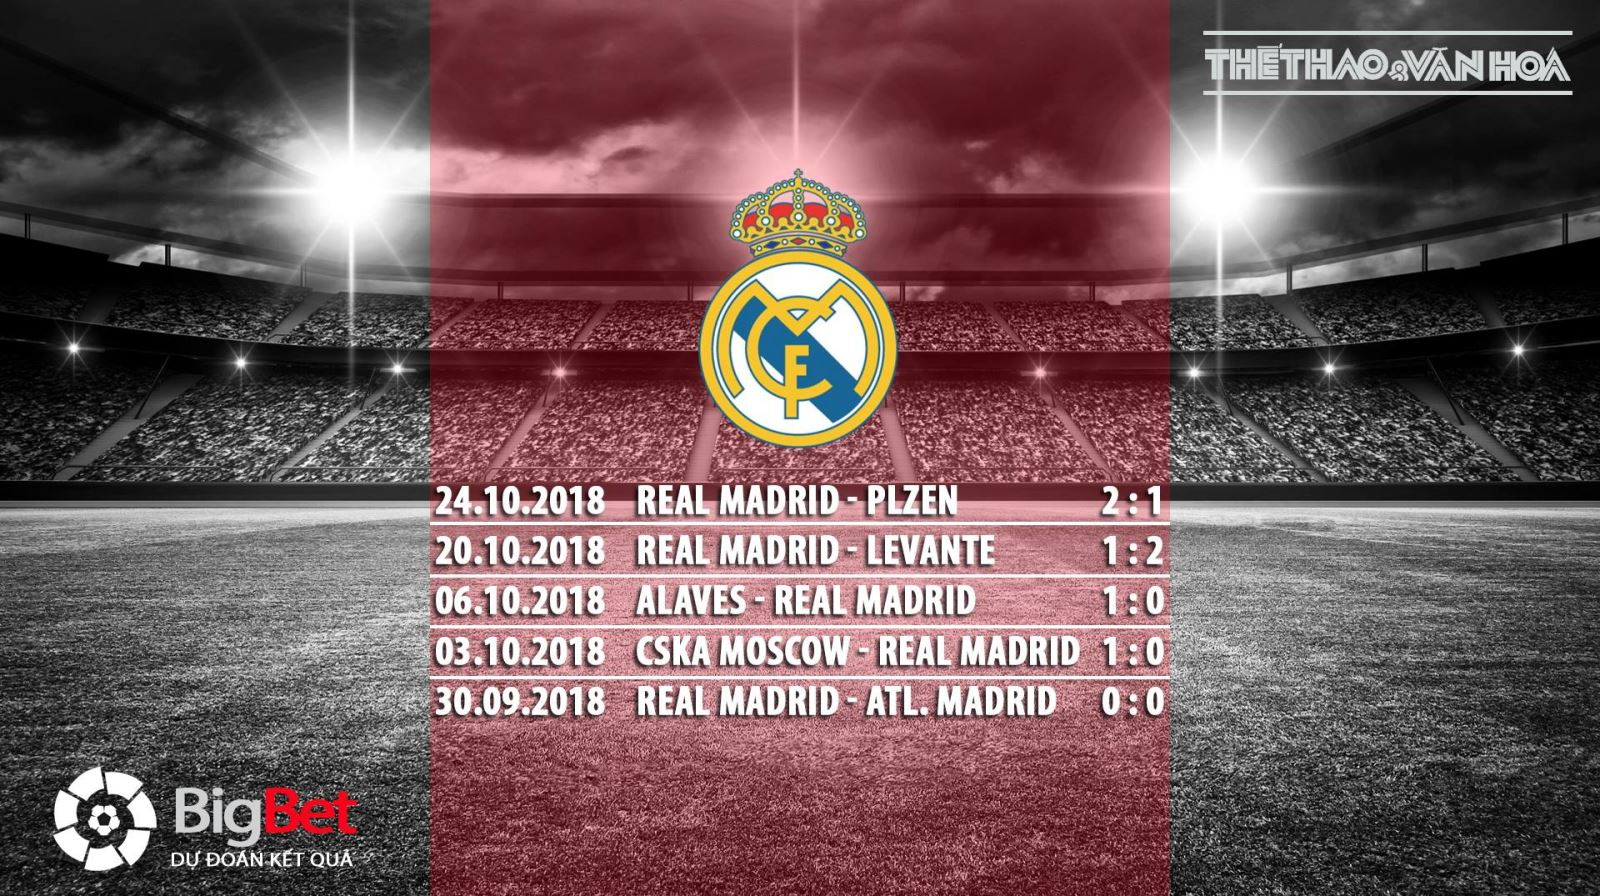 Barca, Real, Barcelona, Real Madrid, Barca vs Real, Real vs Barca, Barcelona vs Real Madrid, Real Madrid vs Barcelona